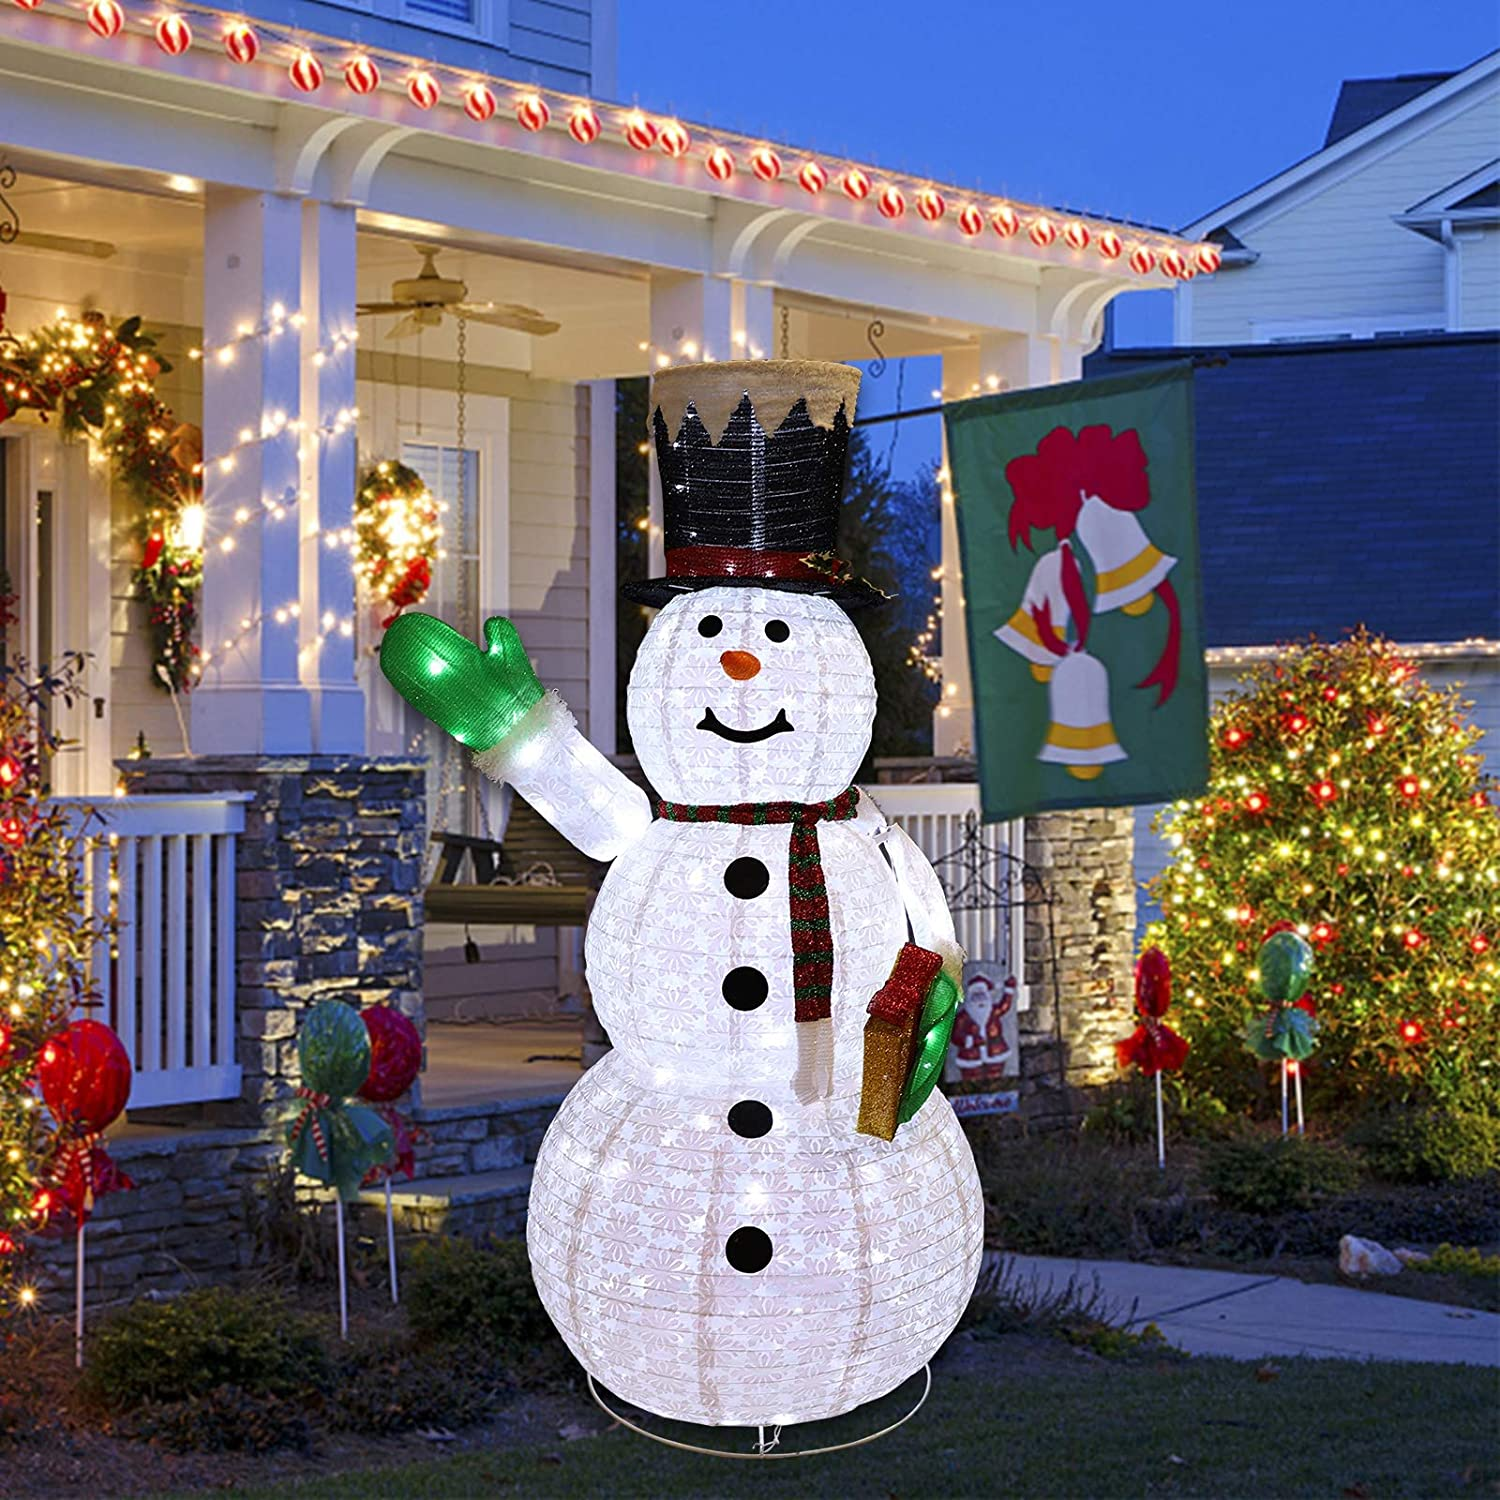 Mortime 6ft Lighted Christmas Portable Snowman Led Xmas Snowman Decor For Christmas Outdoor Yard Party Shopping Mall Decorations Garden Outdoor